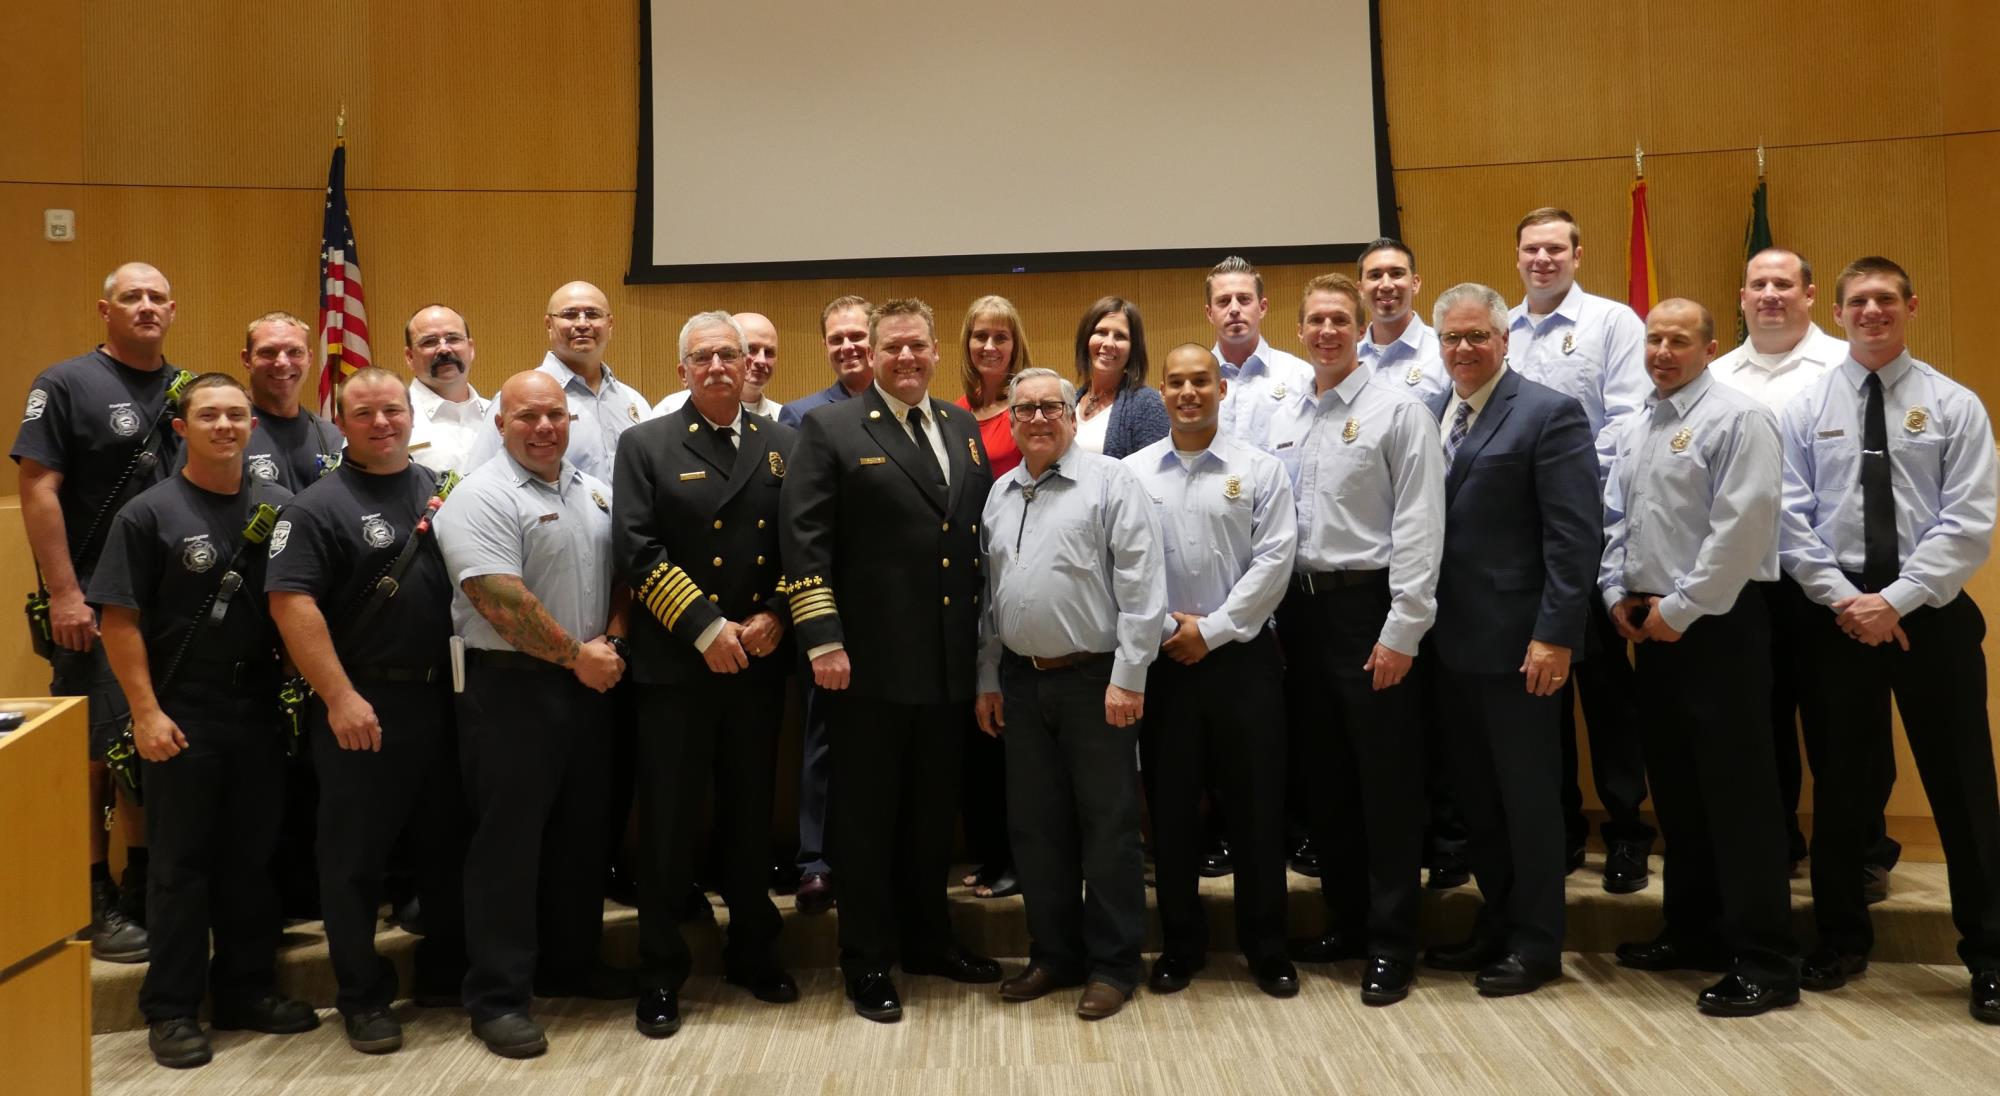 Mayor Barney and the Town Council with Chief Knight, Chief Gray, and the Queen Creek Fire Department at the June 20 Town Council Meeting.jpg